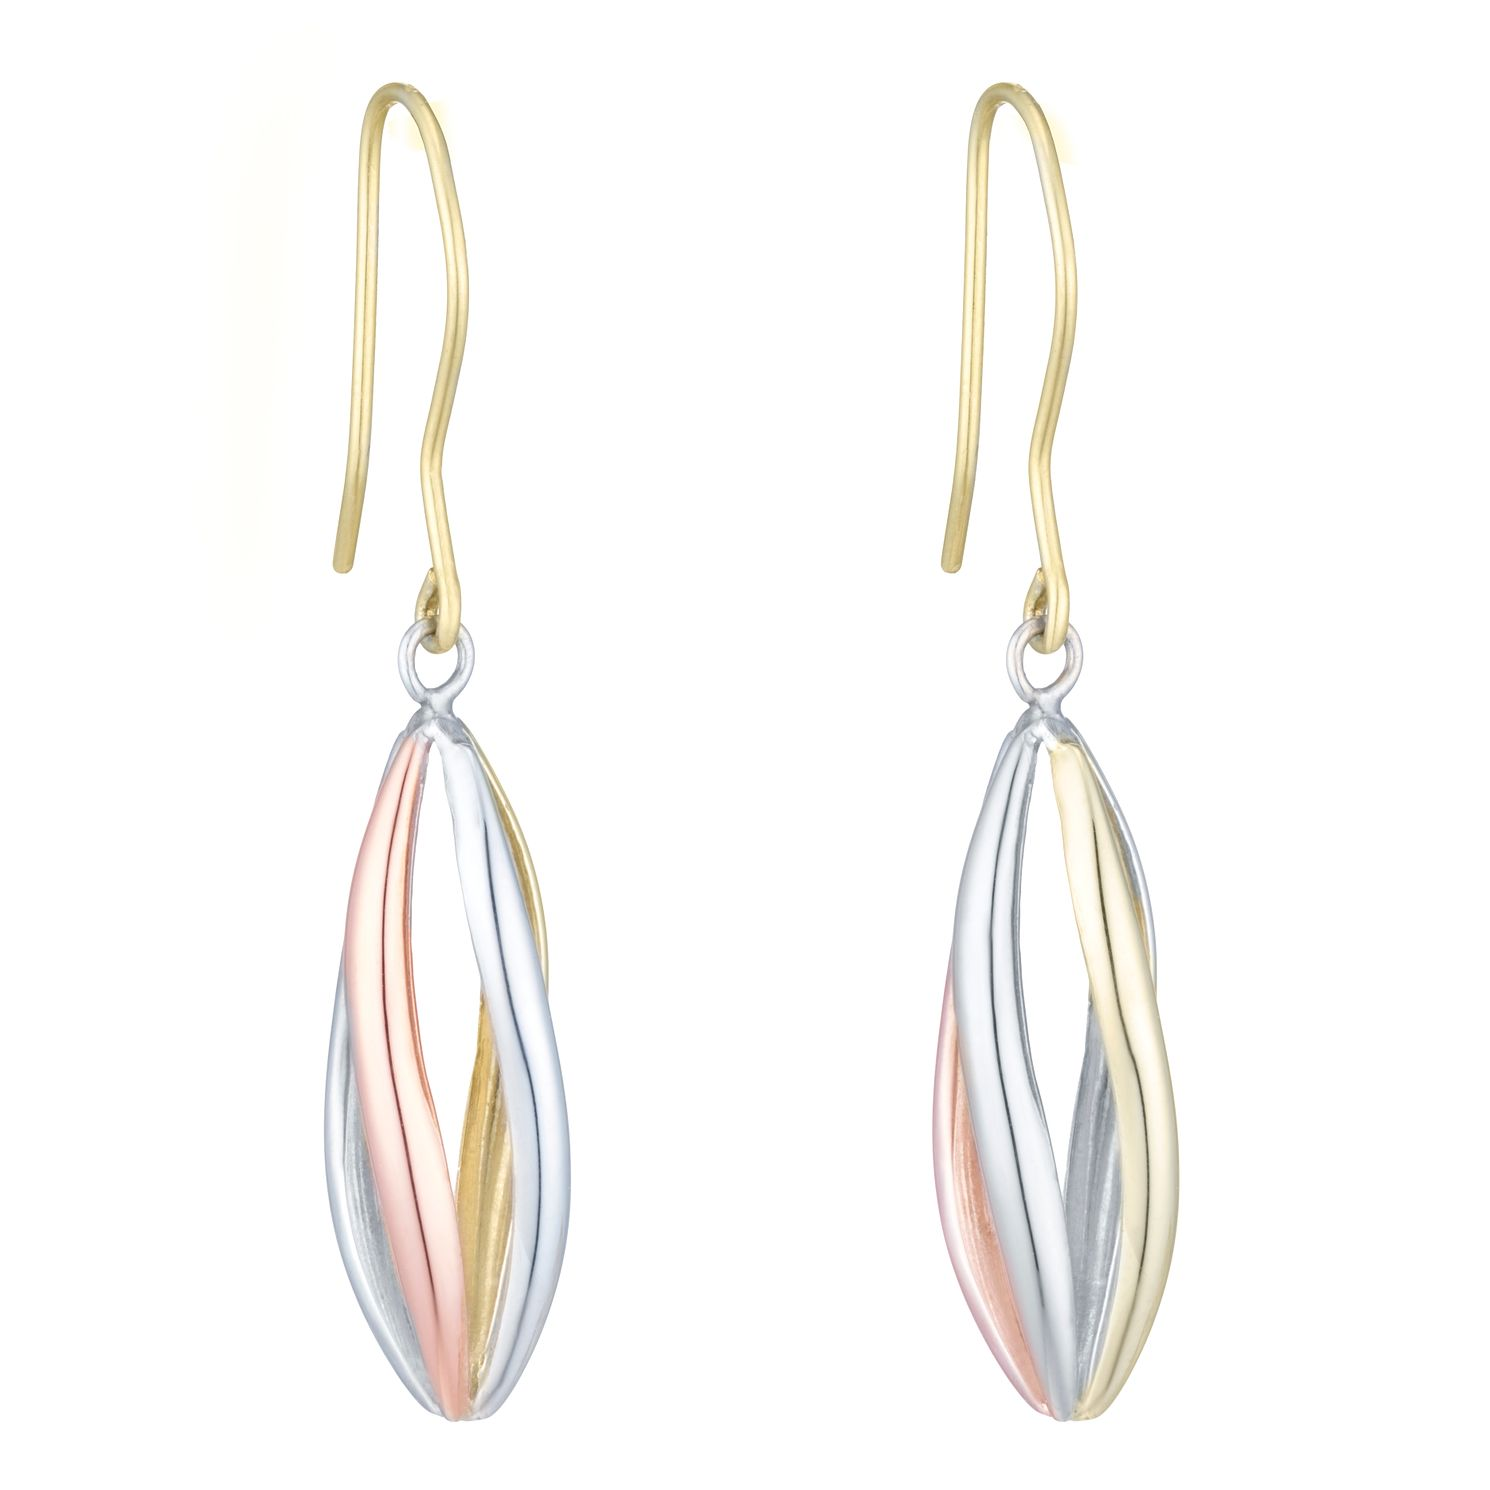 Together Silver & 9ct Bonded Gold Three Colour Cage Earrings - Product number 8111286